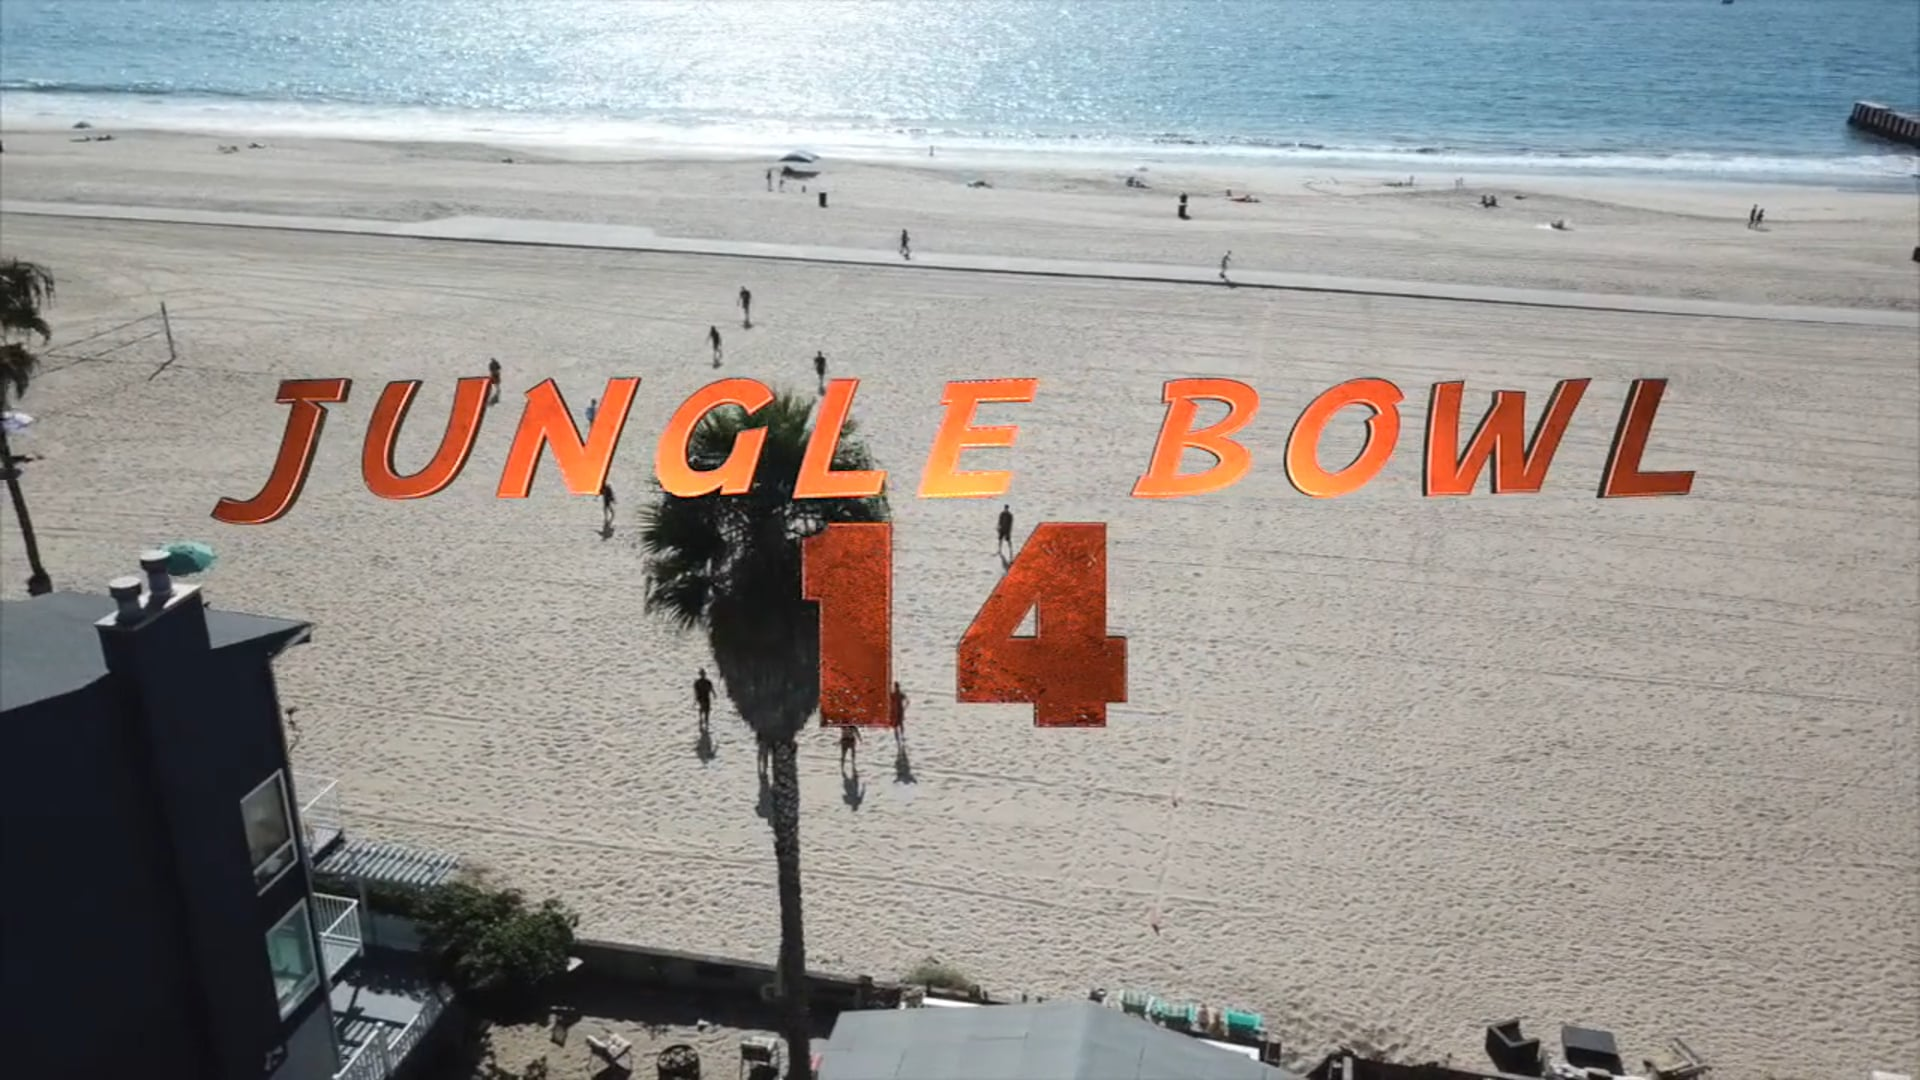 Jungle Bowl 14 - With the World Watching